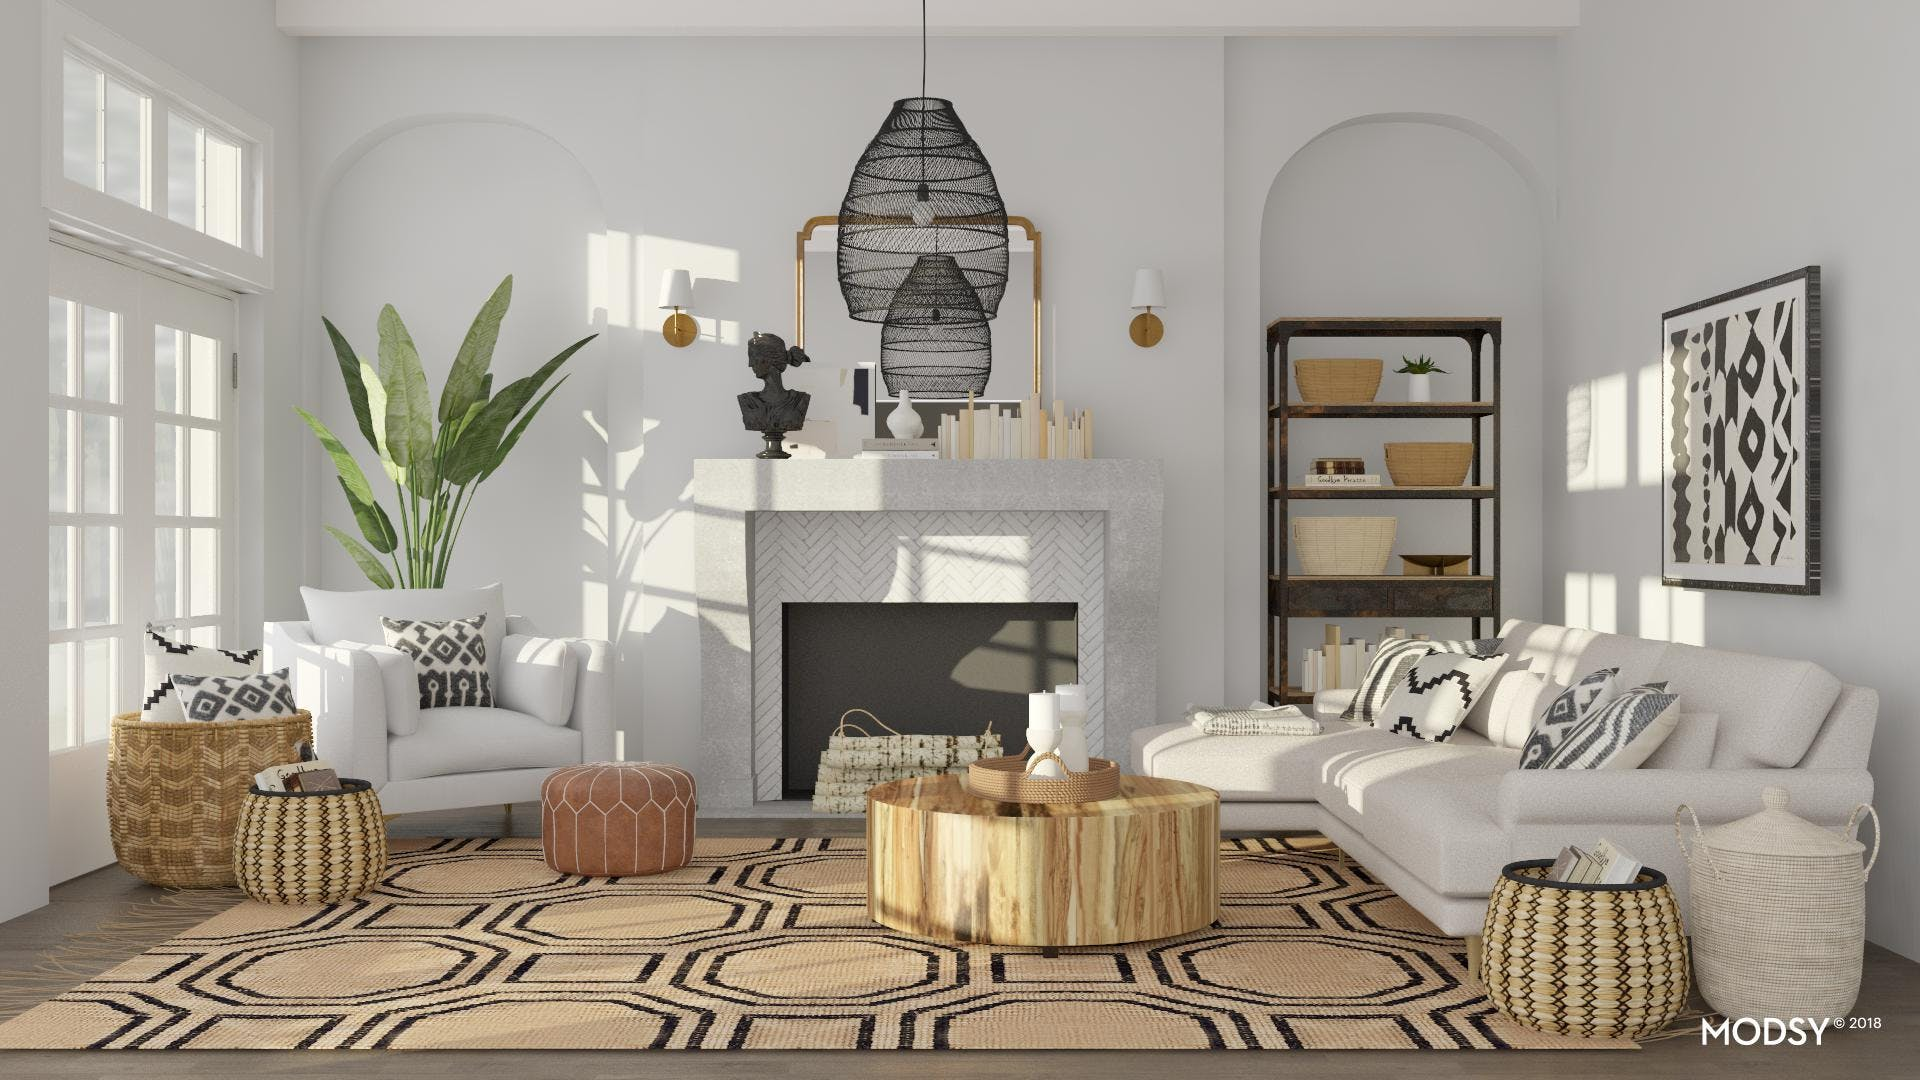 Find Living Room Design Ideas At Modsy